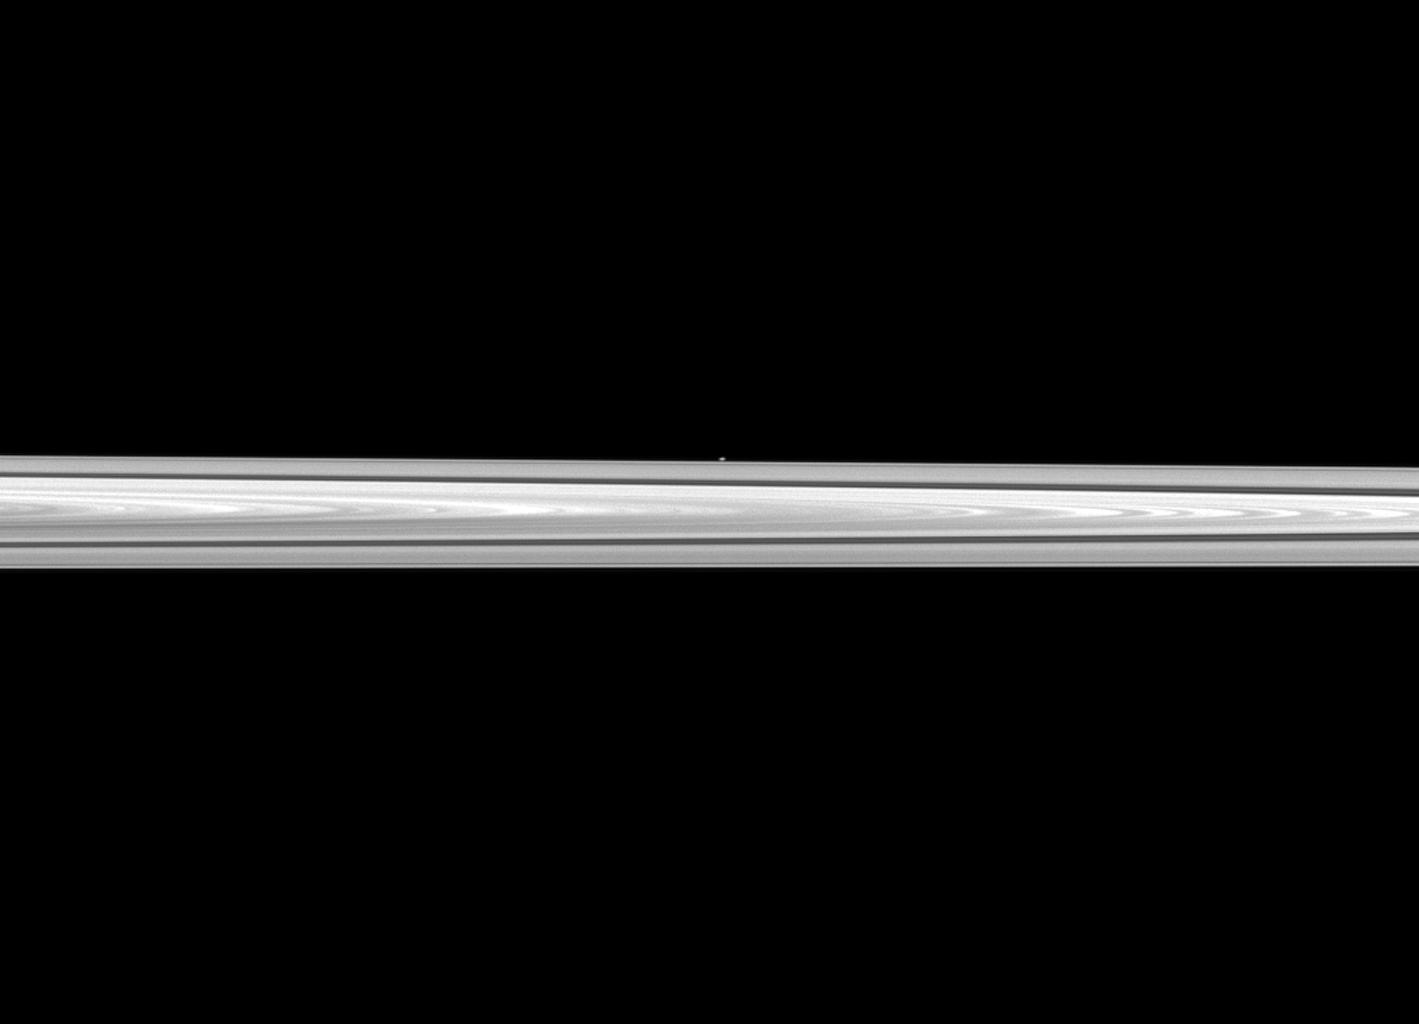 NASA's Cassini spacecraft looks past Saturn's main rings to spy the tiny moon Atlas, which orbits between the main rings and the thin F ring. The main rings are closer to the spacecraft than Atlas is, and the moon appears as only a small, white dot.